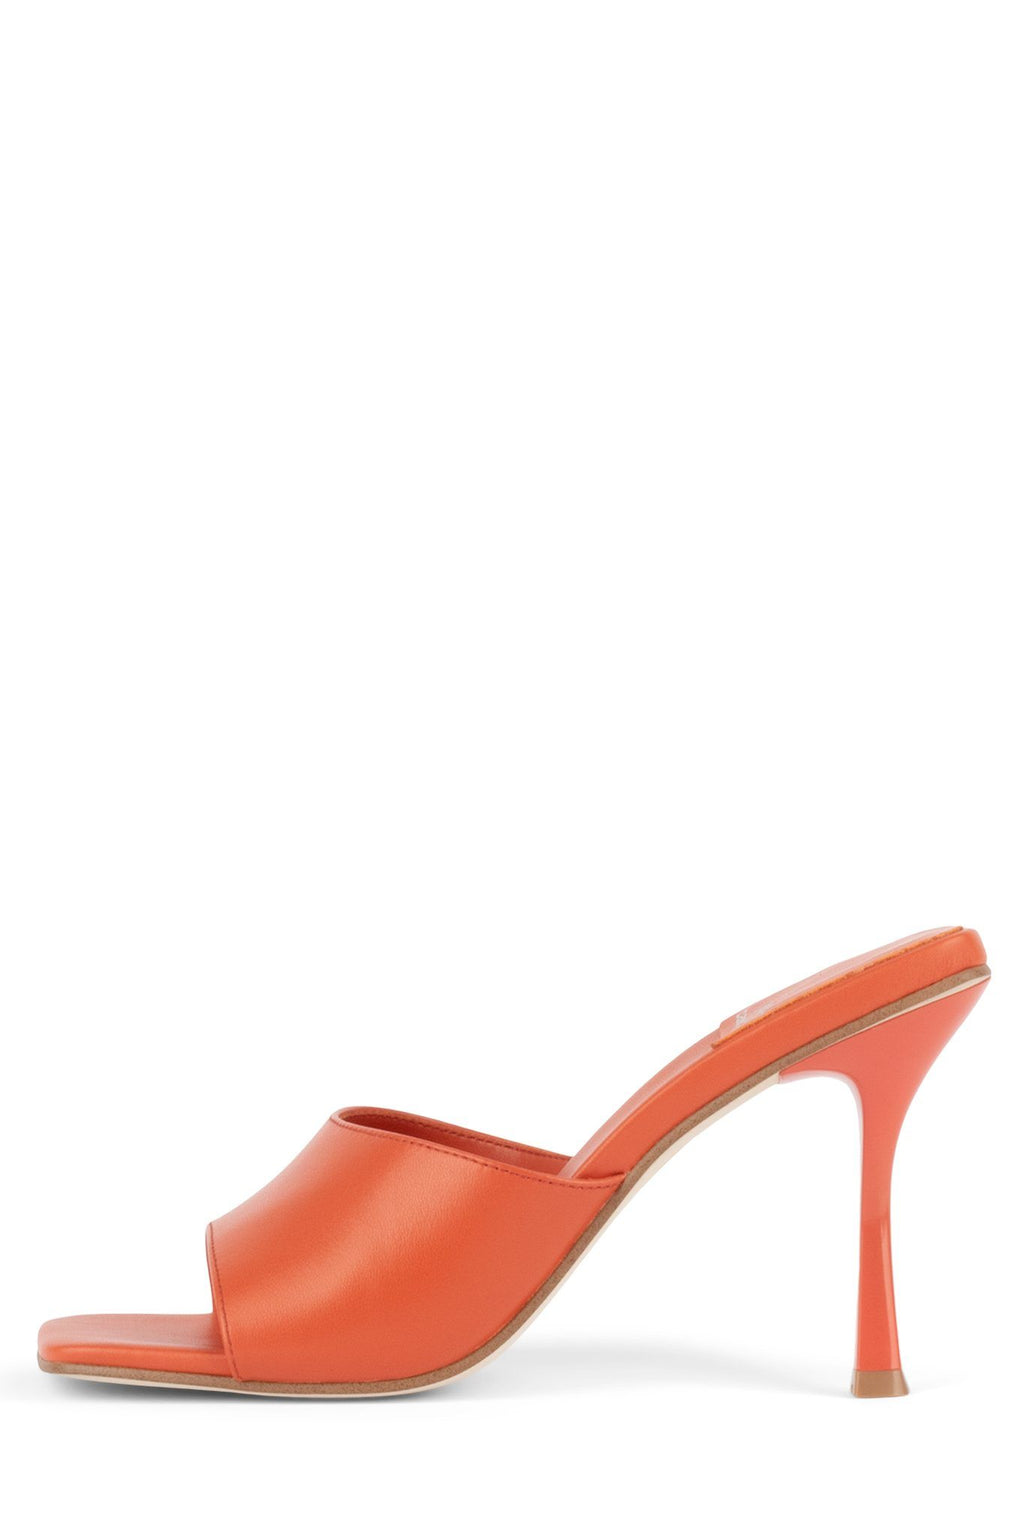 UTOPIC Heeled Mule YYH Orange 6